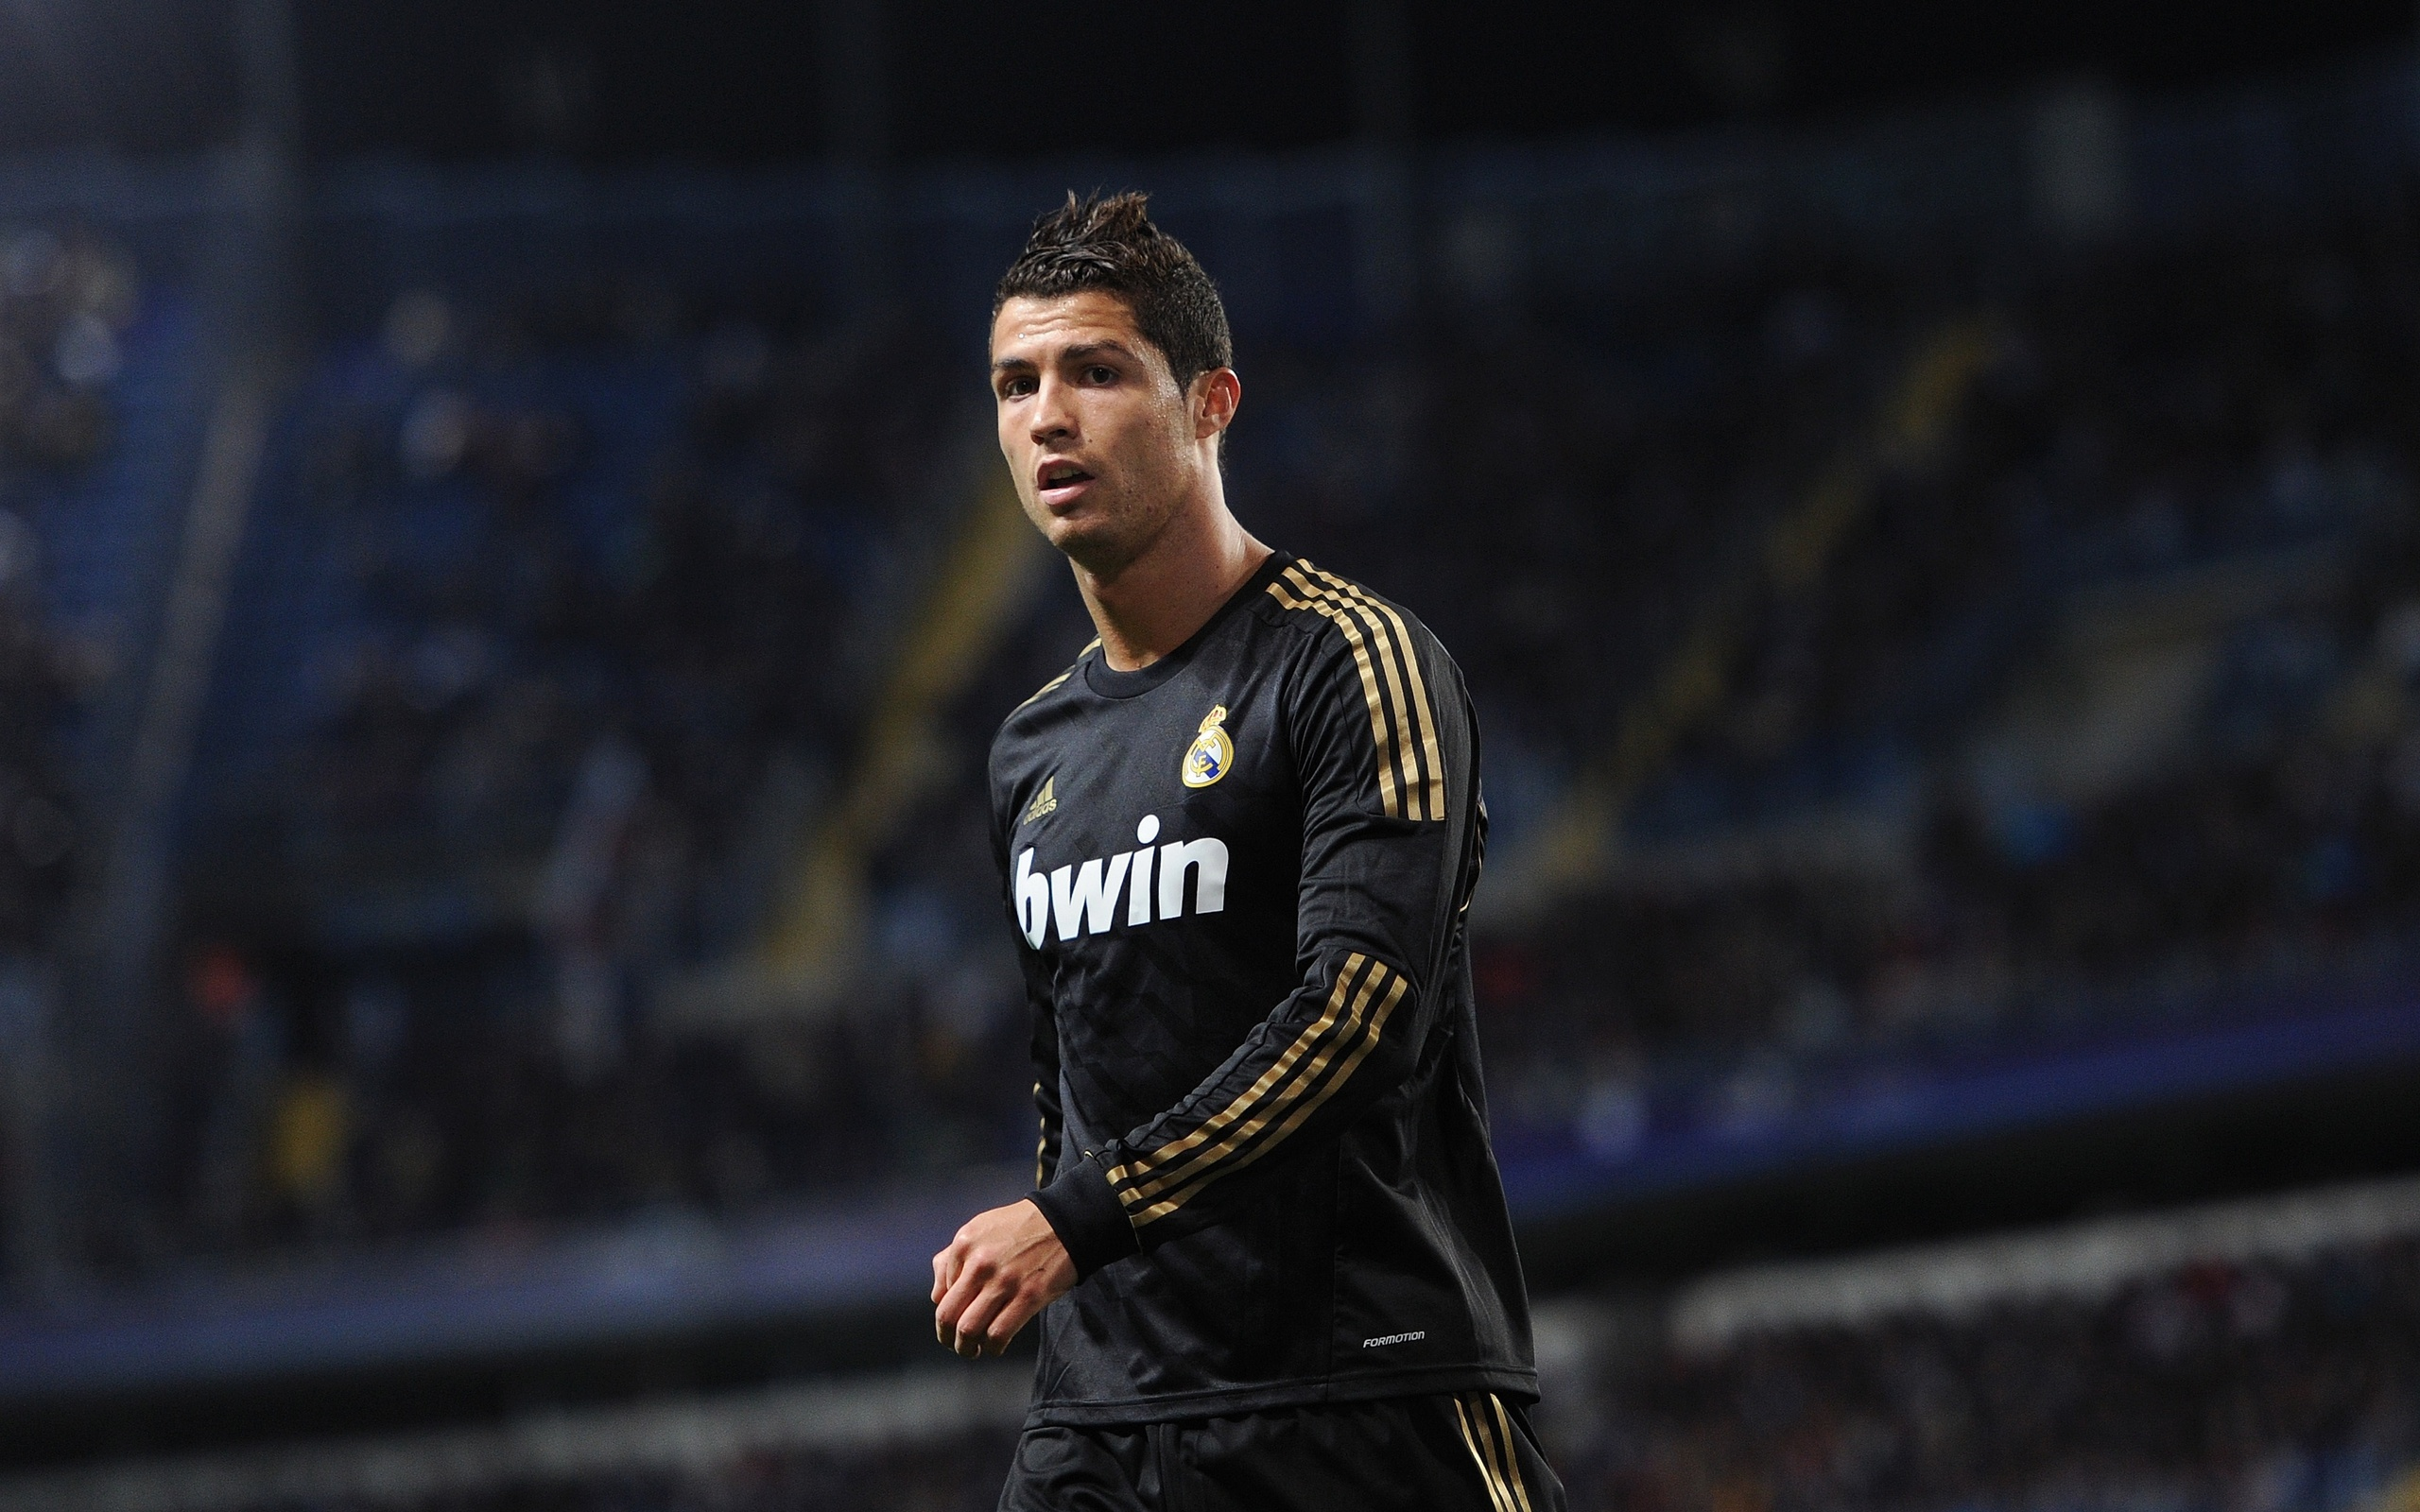 Cristiano Ronaldo New Hd Wallpapers 2015 All Hd Wallpapers